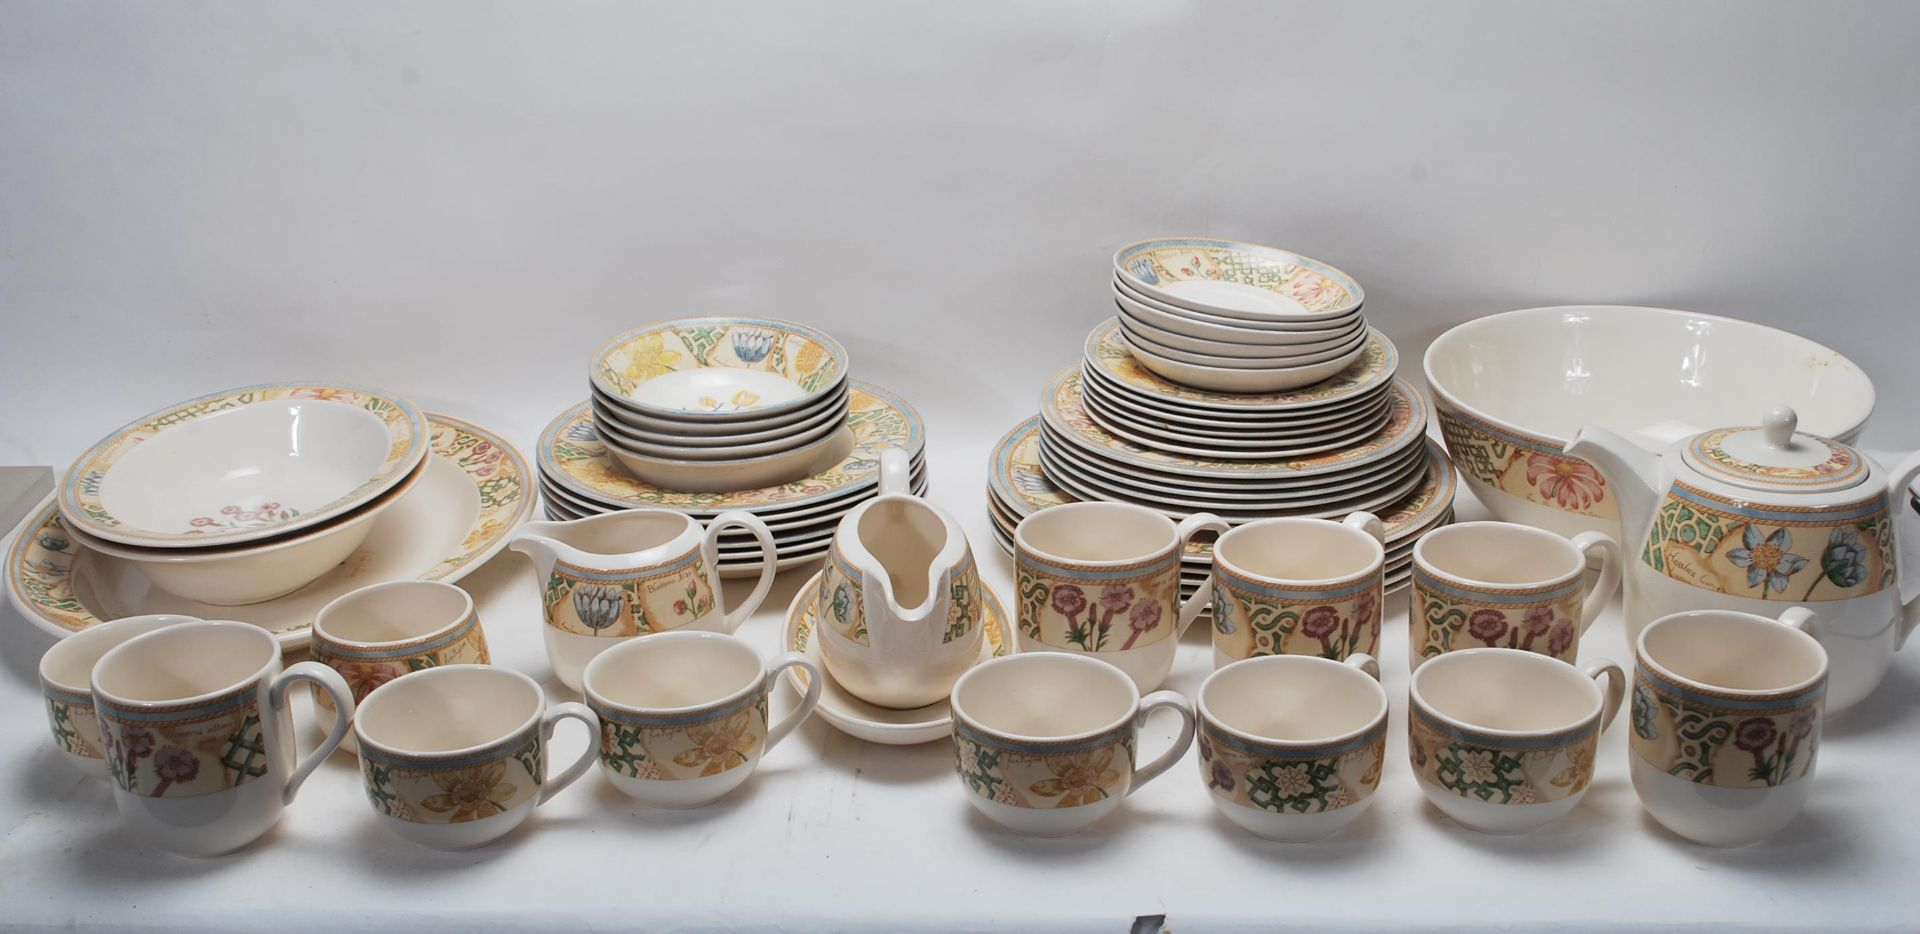 A LARGE 20TH CENTURY WEDGWOOD DINNER SERVICE WITH GRDEN MAZE PATTERN